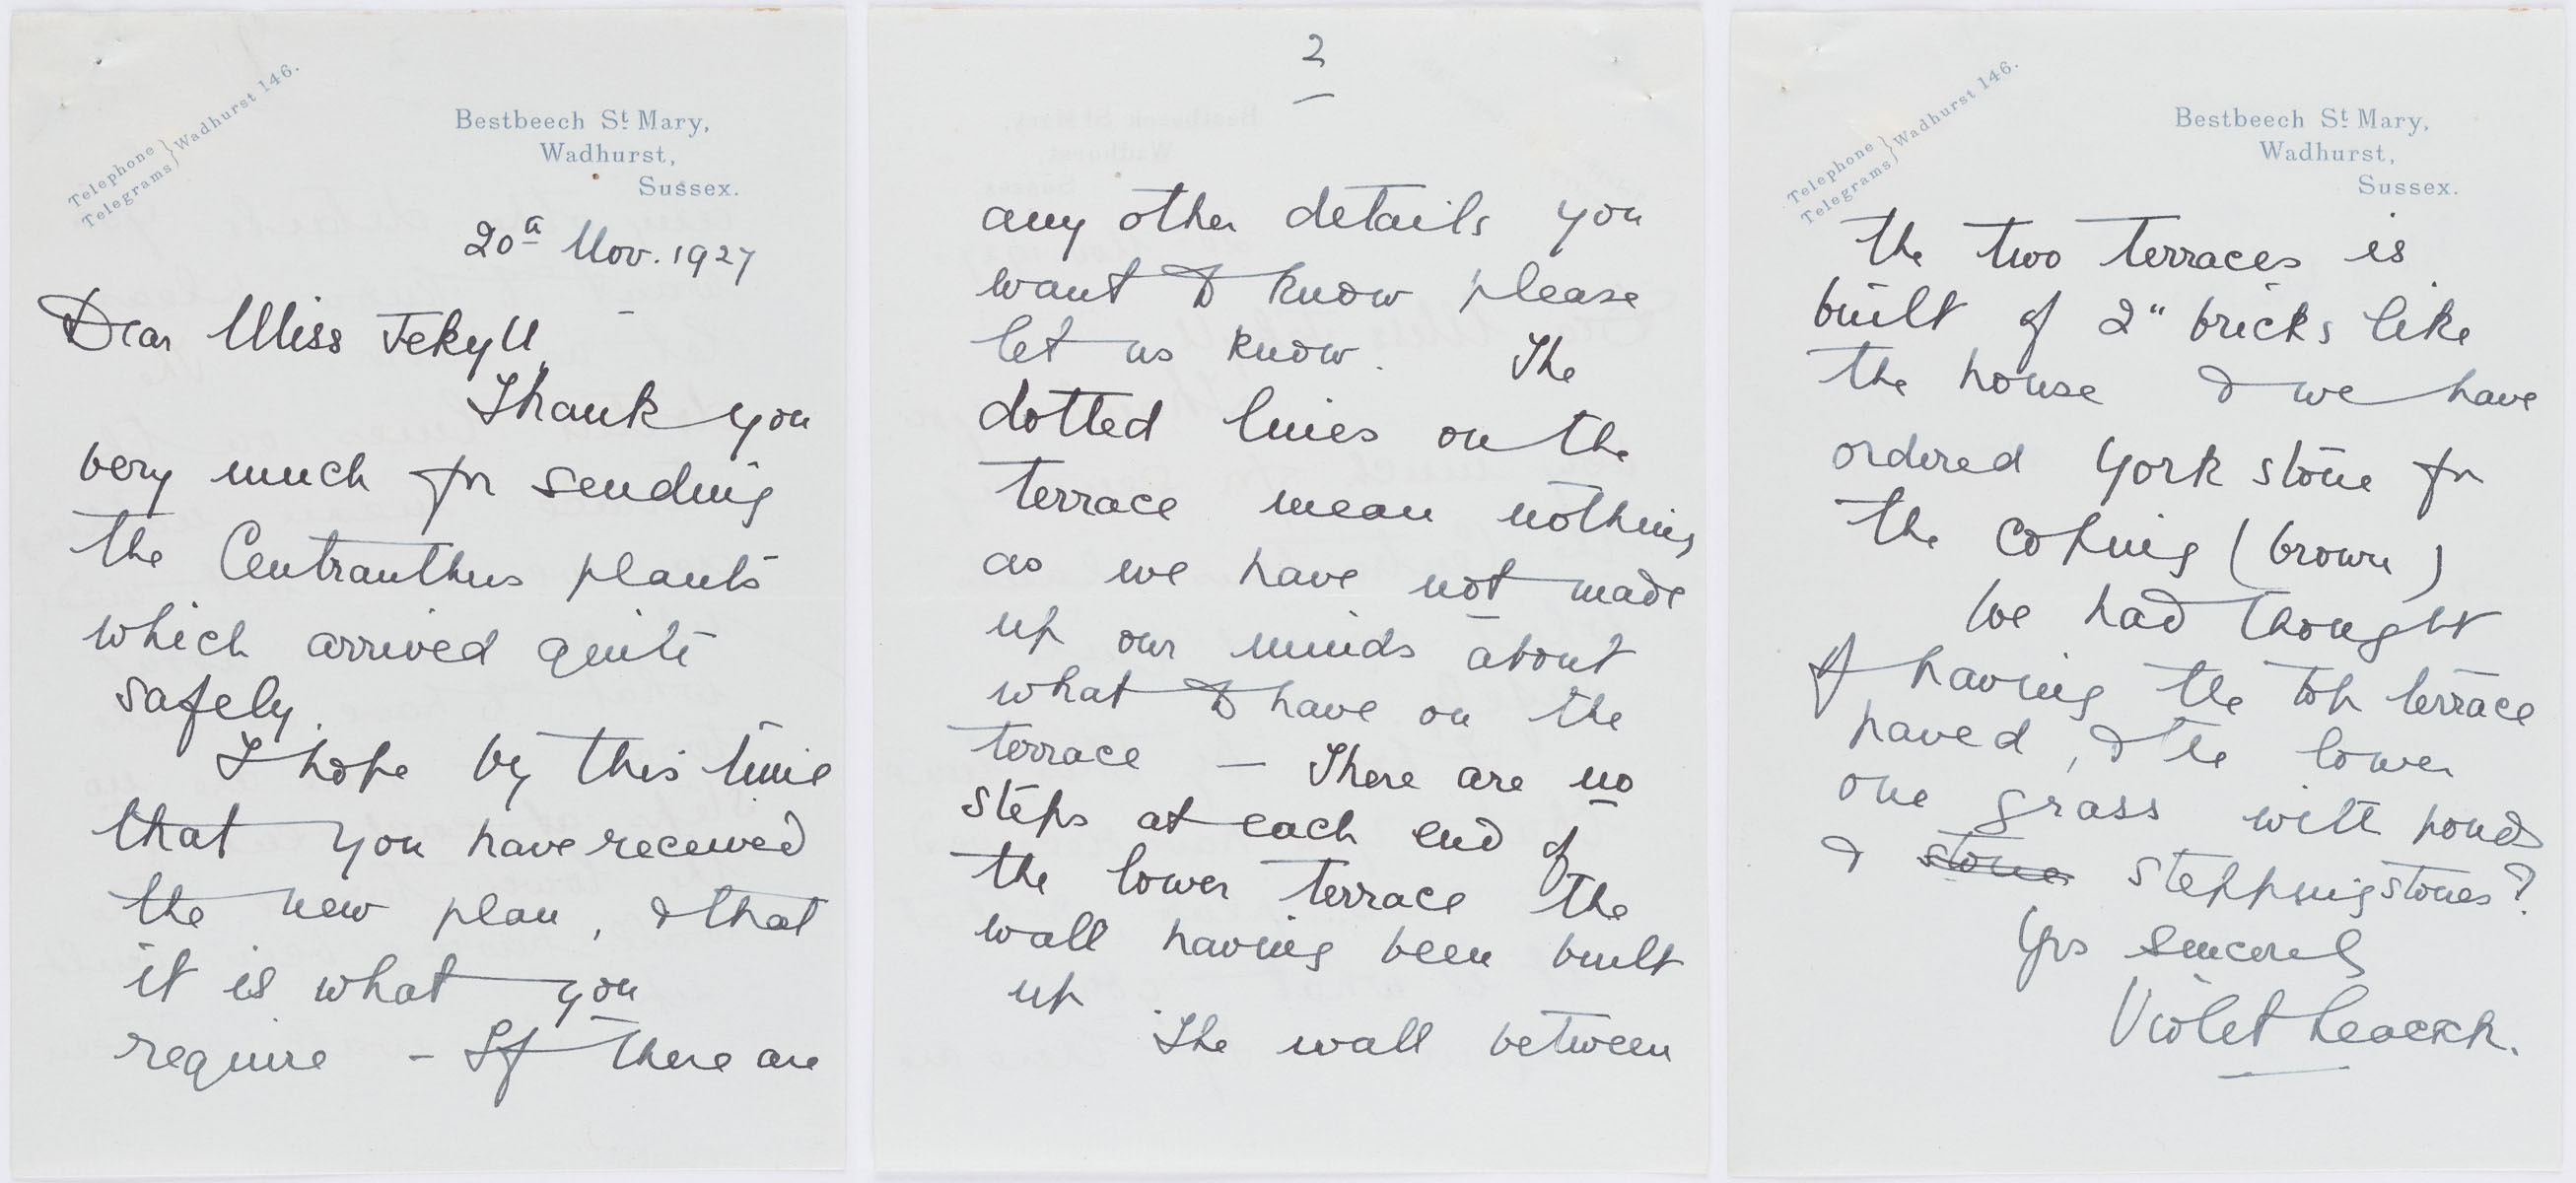 Pages 1-3, Letter to Gertrude Jekyll from Violet Leacock, regarding the gardens at Bestbeech St. Mary, of November 20, 1927